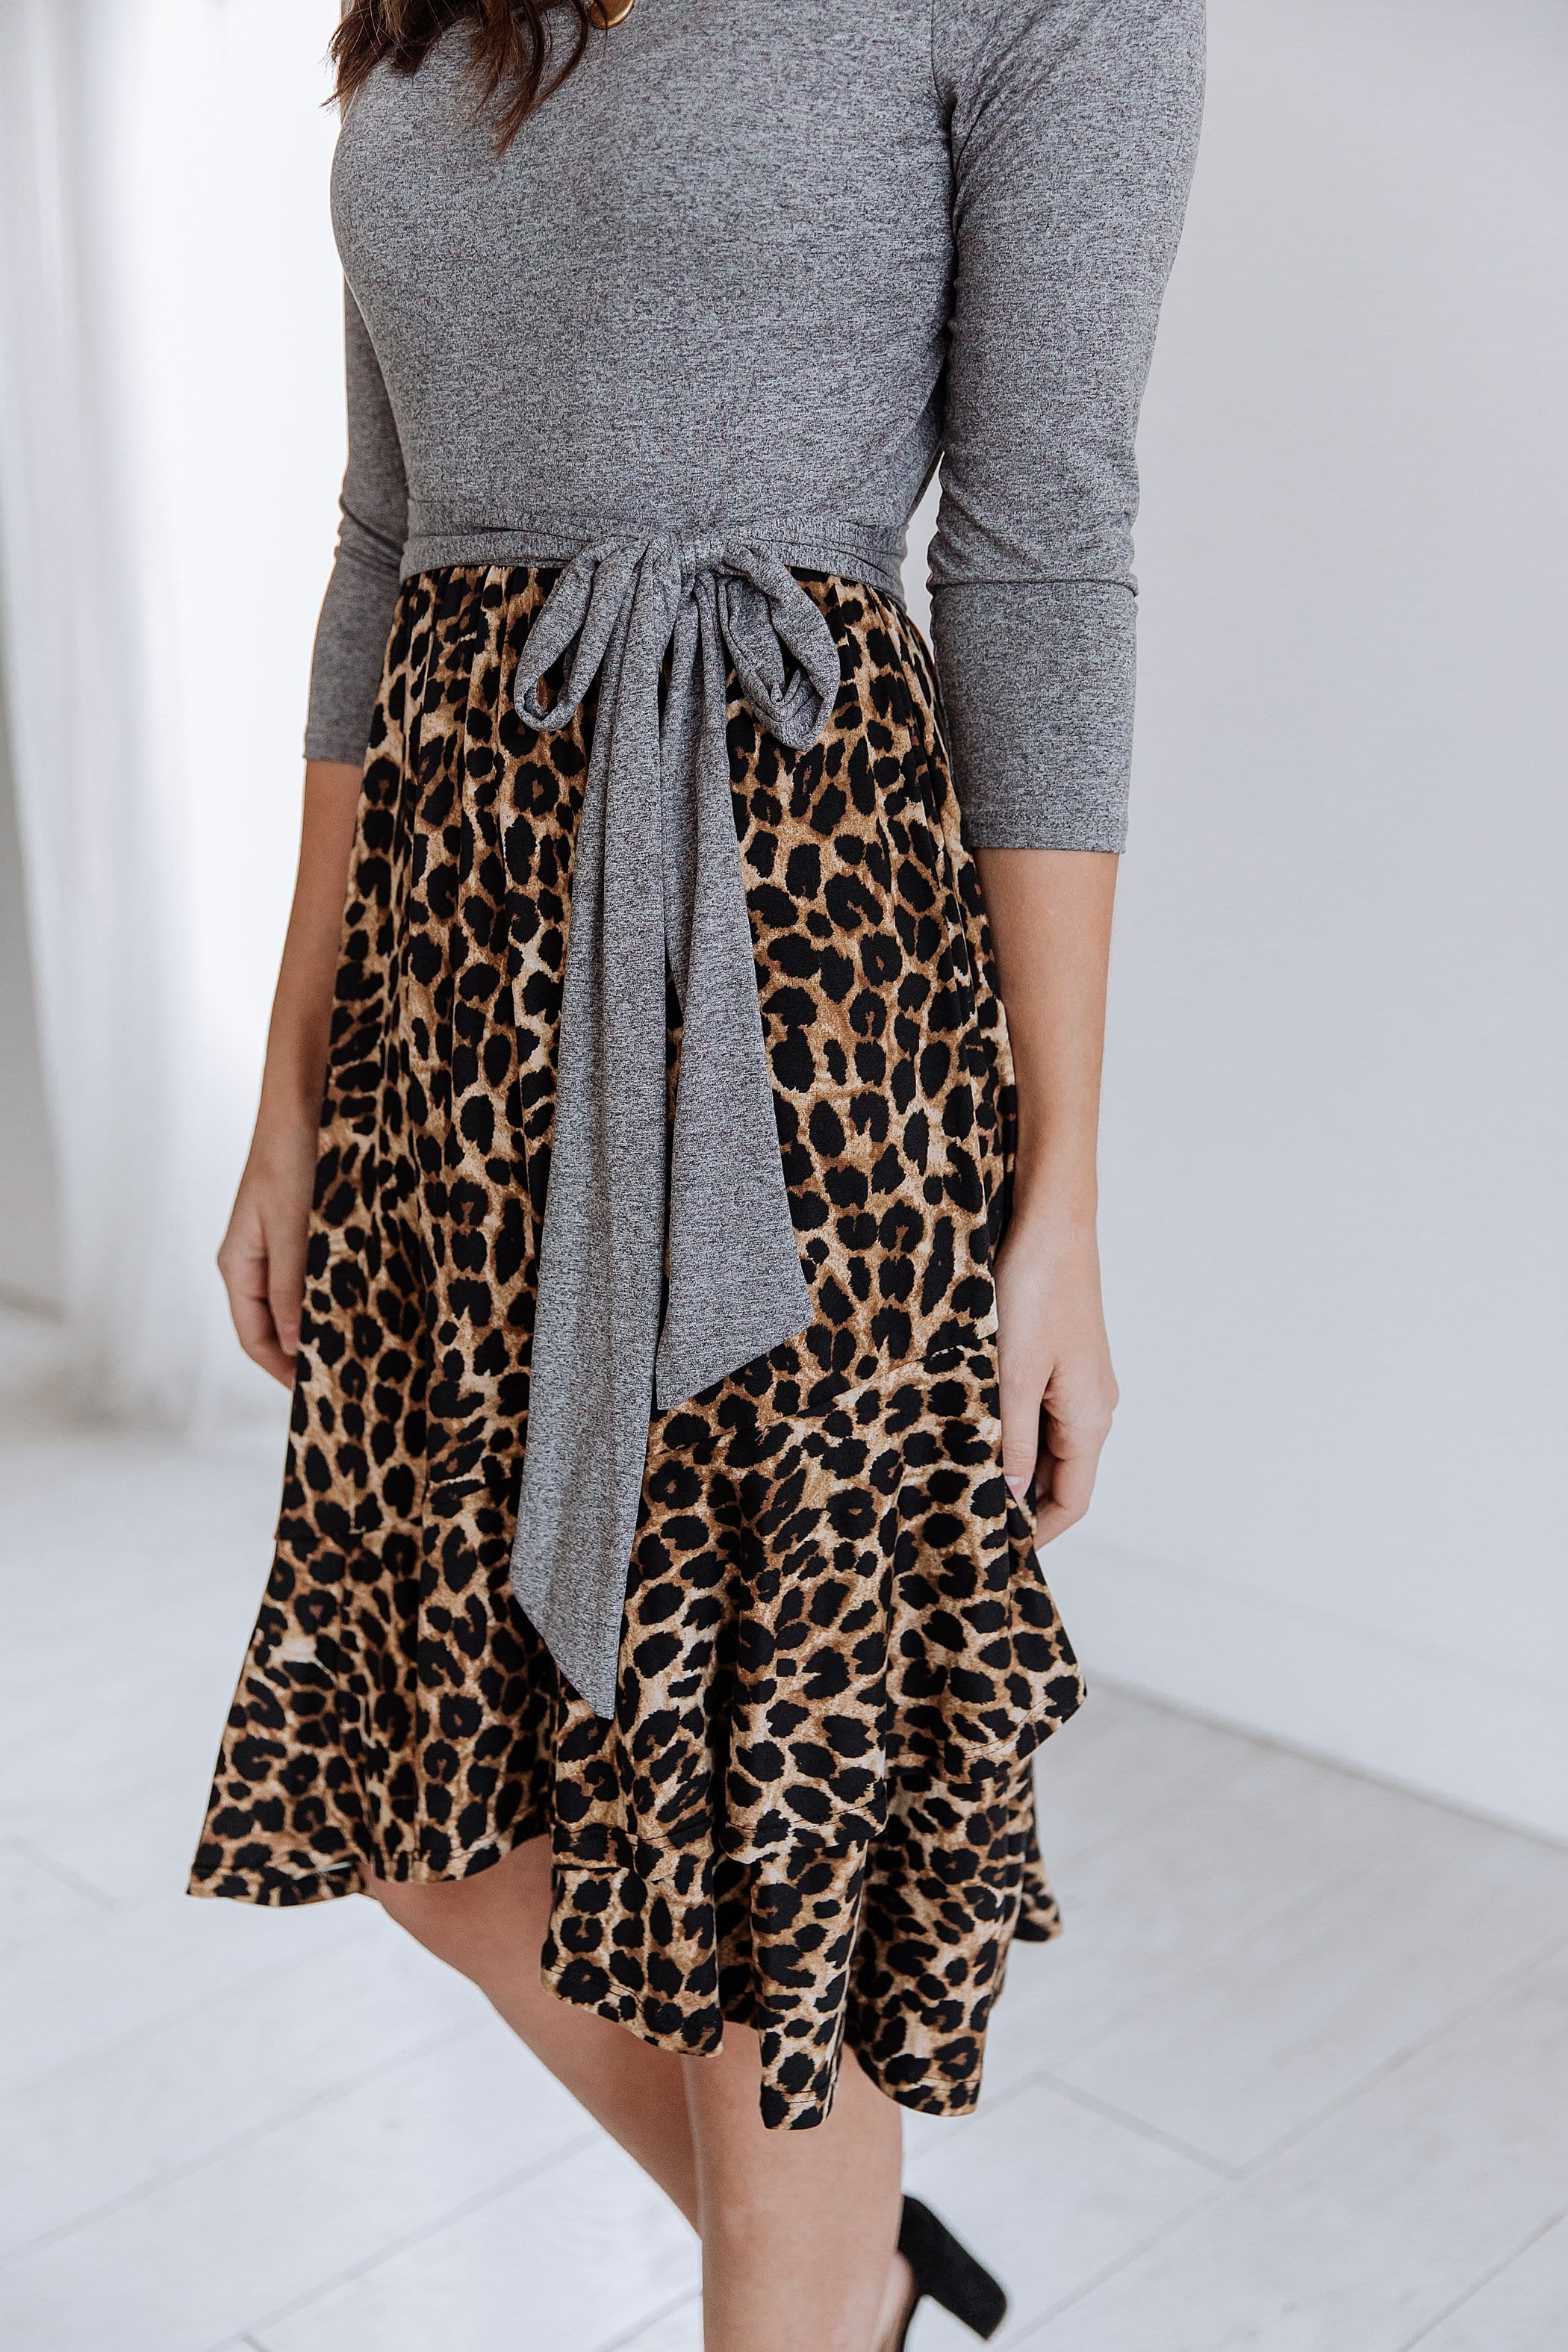 The Brexley Leopard Print Dress in Grey